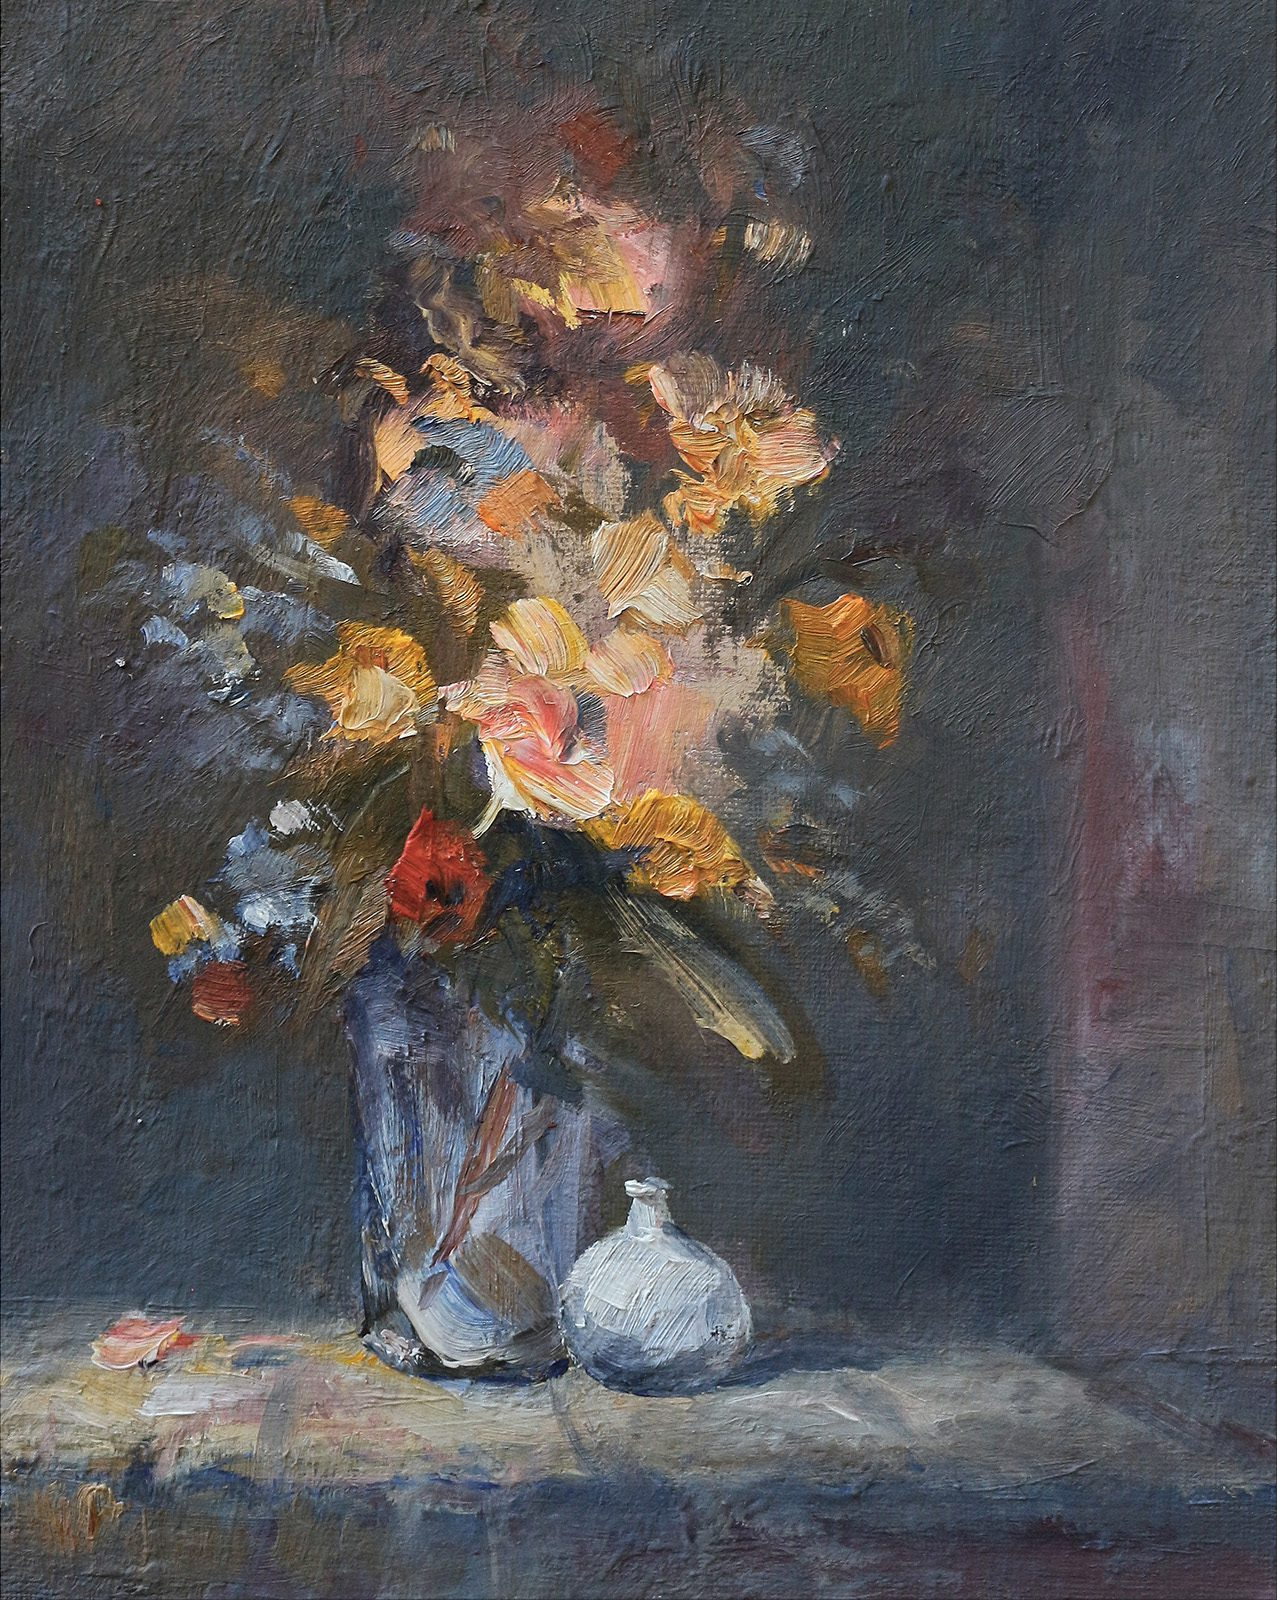 Still life of flowers in a vase painted in oils by Stewart Taylor